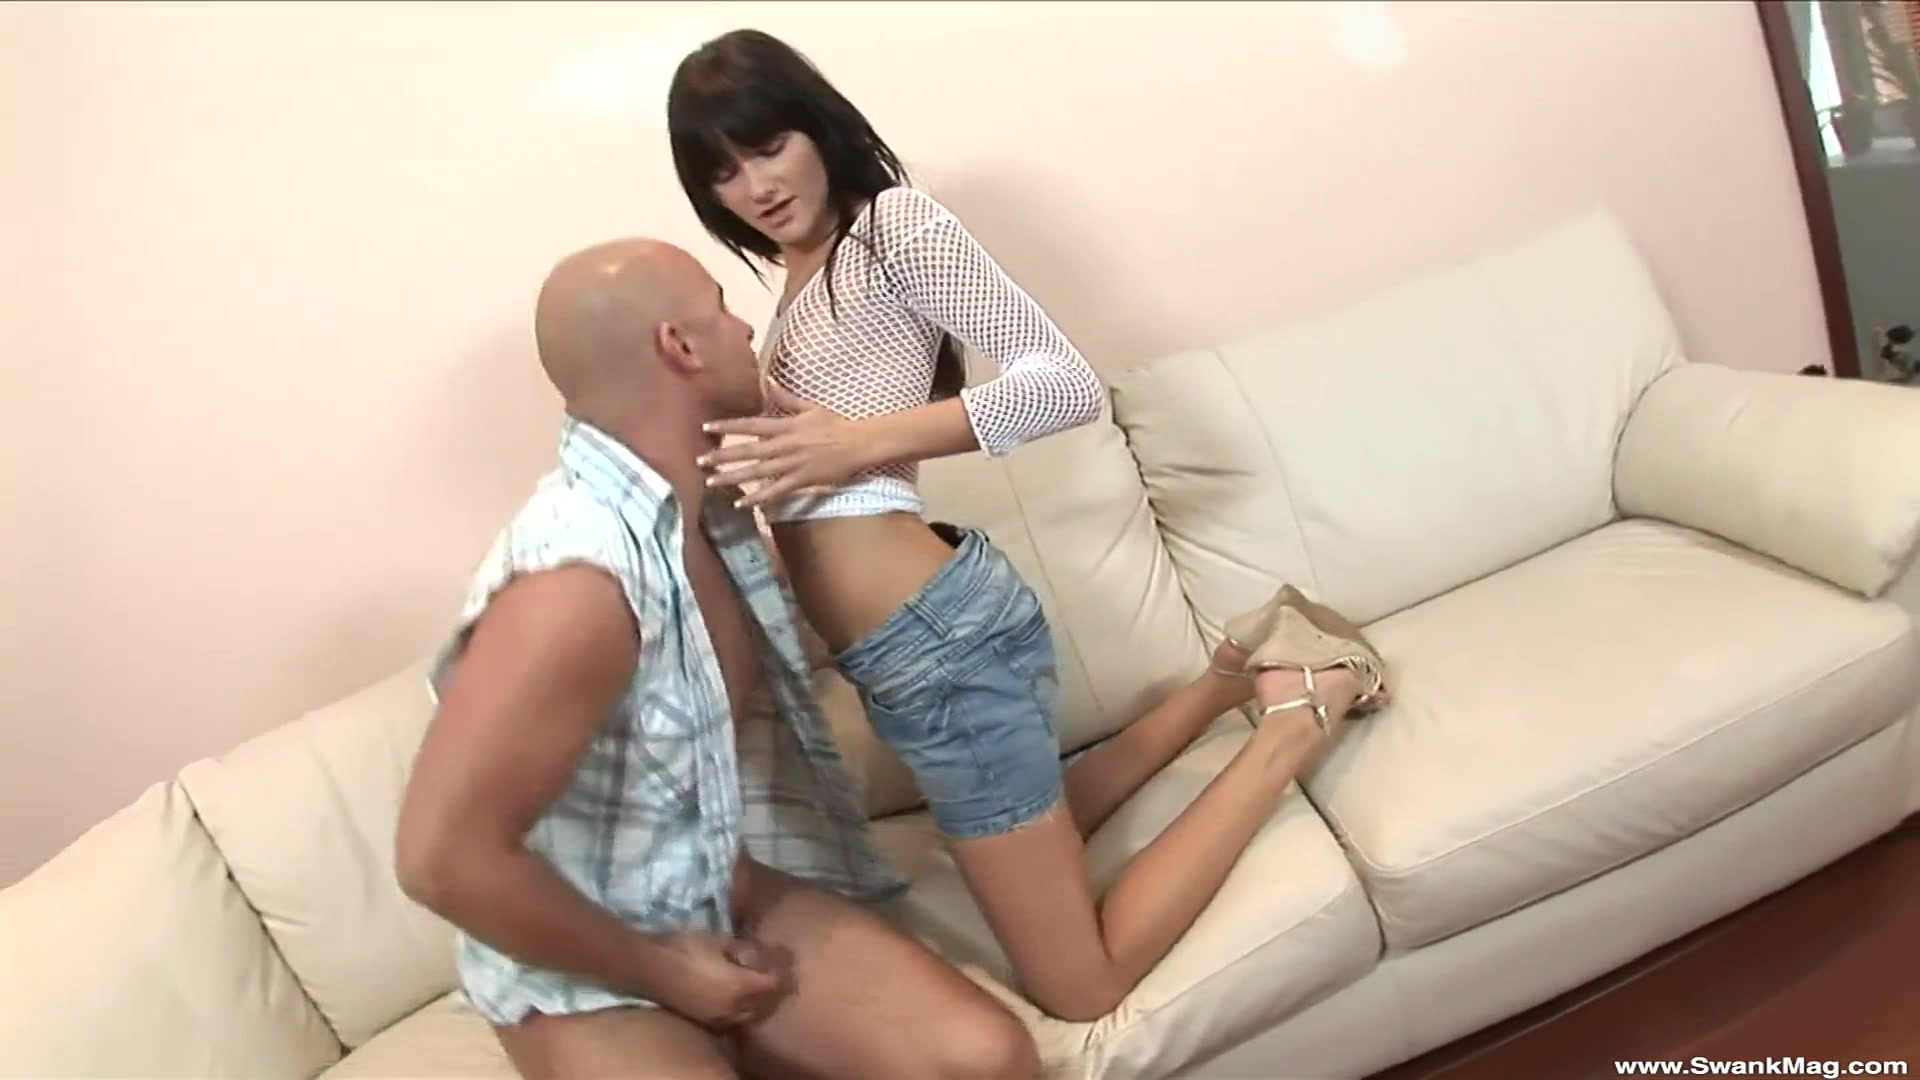 Clothed brunette Dolly Darkley rides a long wiener and moans